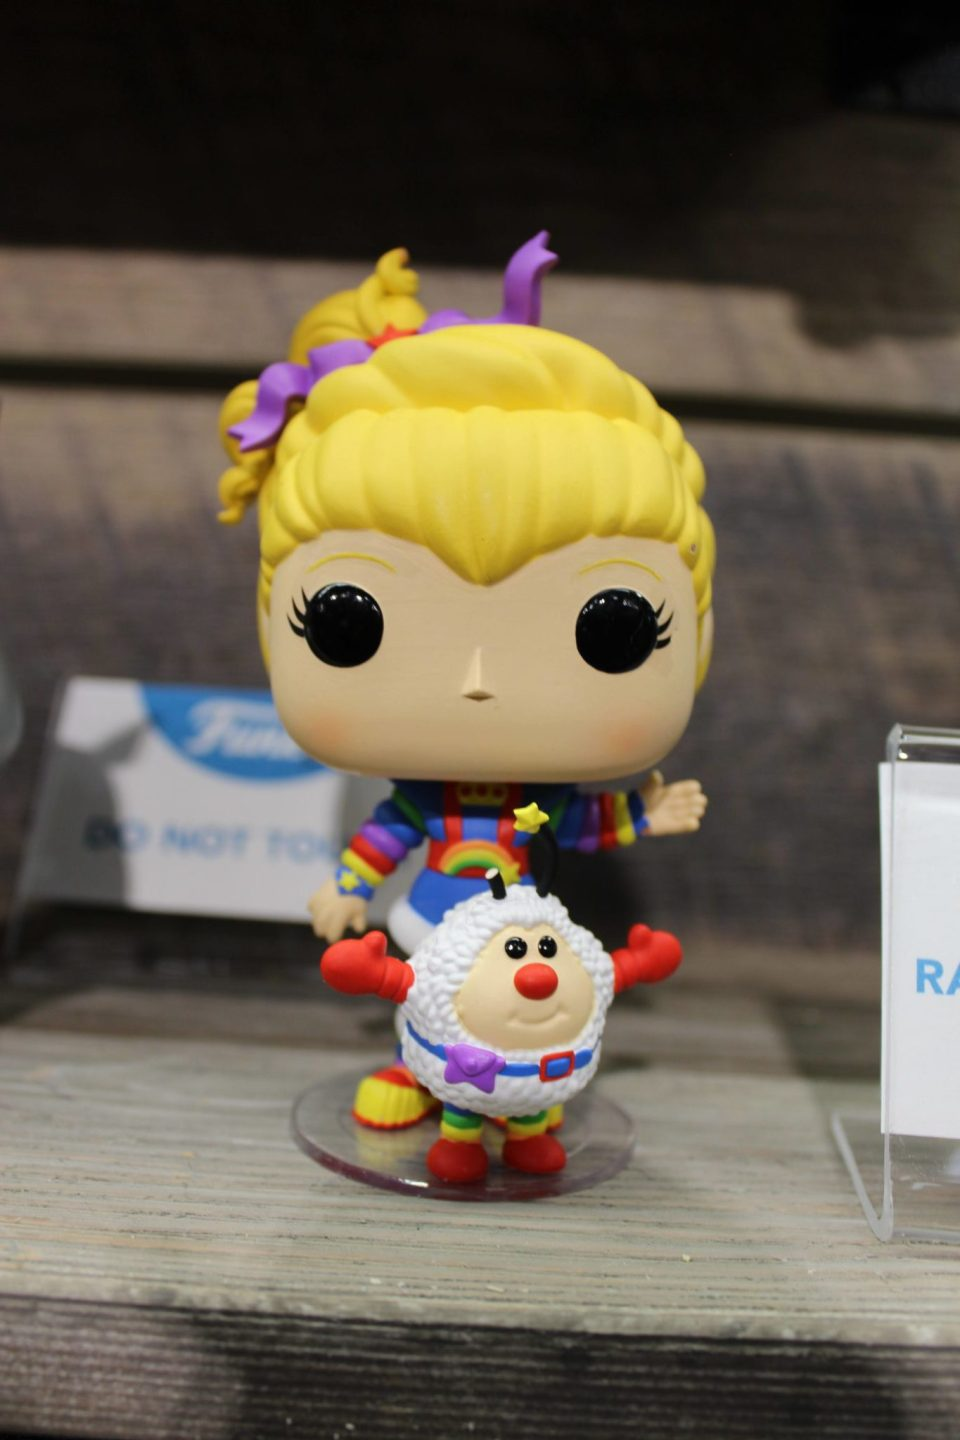 Cool New Toys Make This the Best Year to Play - Toy Fair 2018 Recap #TFNY